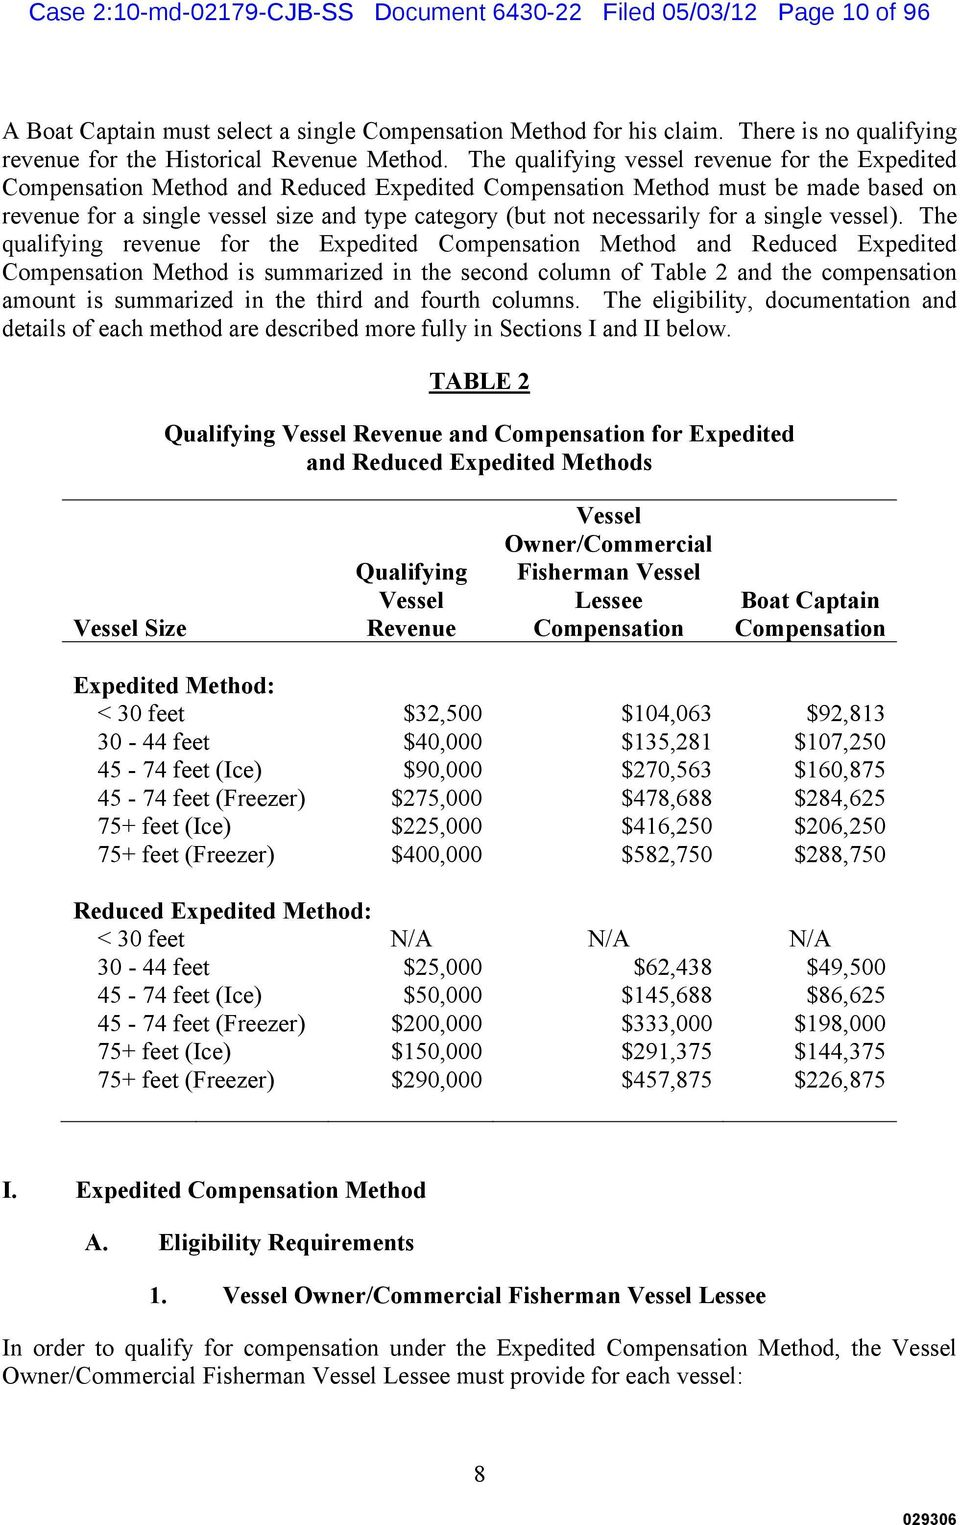 The qualifying vessel revenue for the Expedited Compensation Method and Reduced Expedited Compensation Method must be made based on revenue for a single vessel size and type category (but not